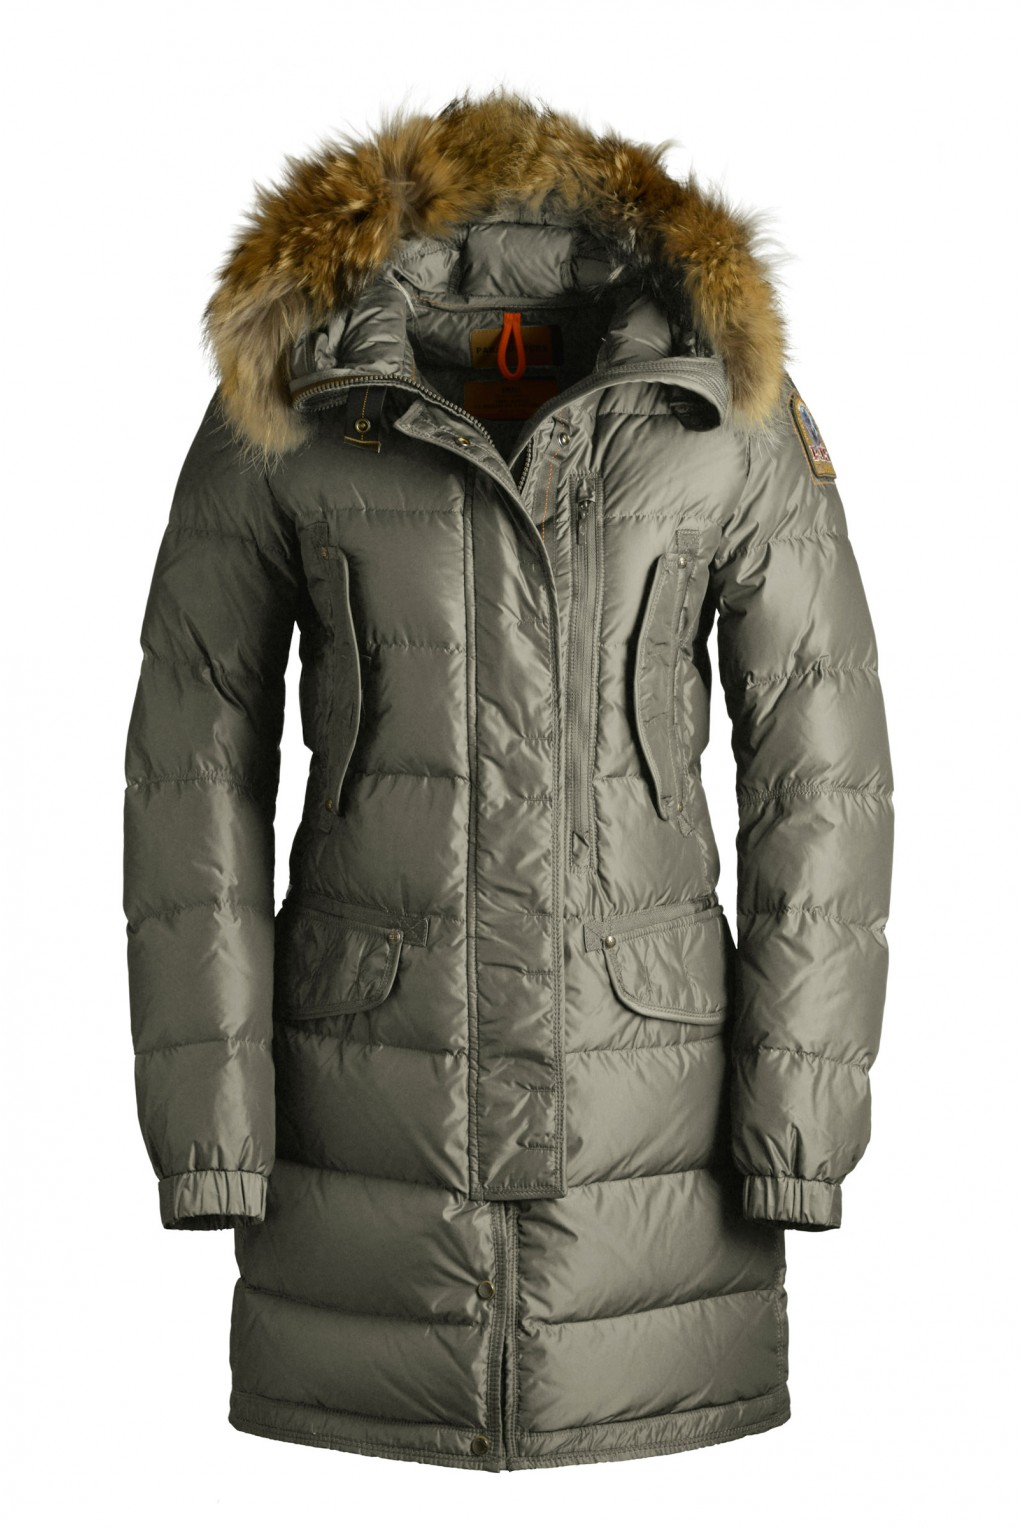 parajumpers HARRASEEKET woman outerwear Sage